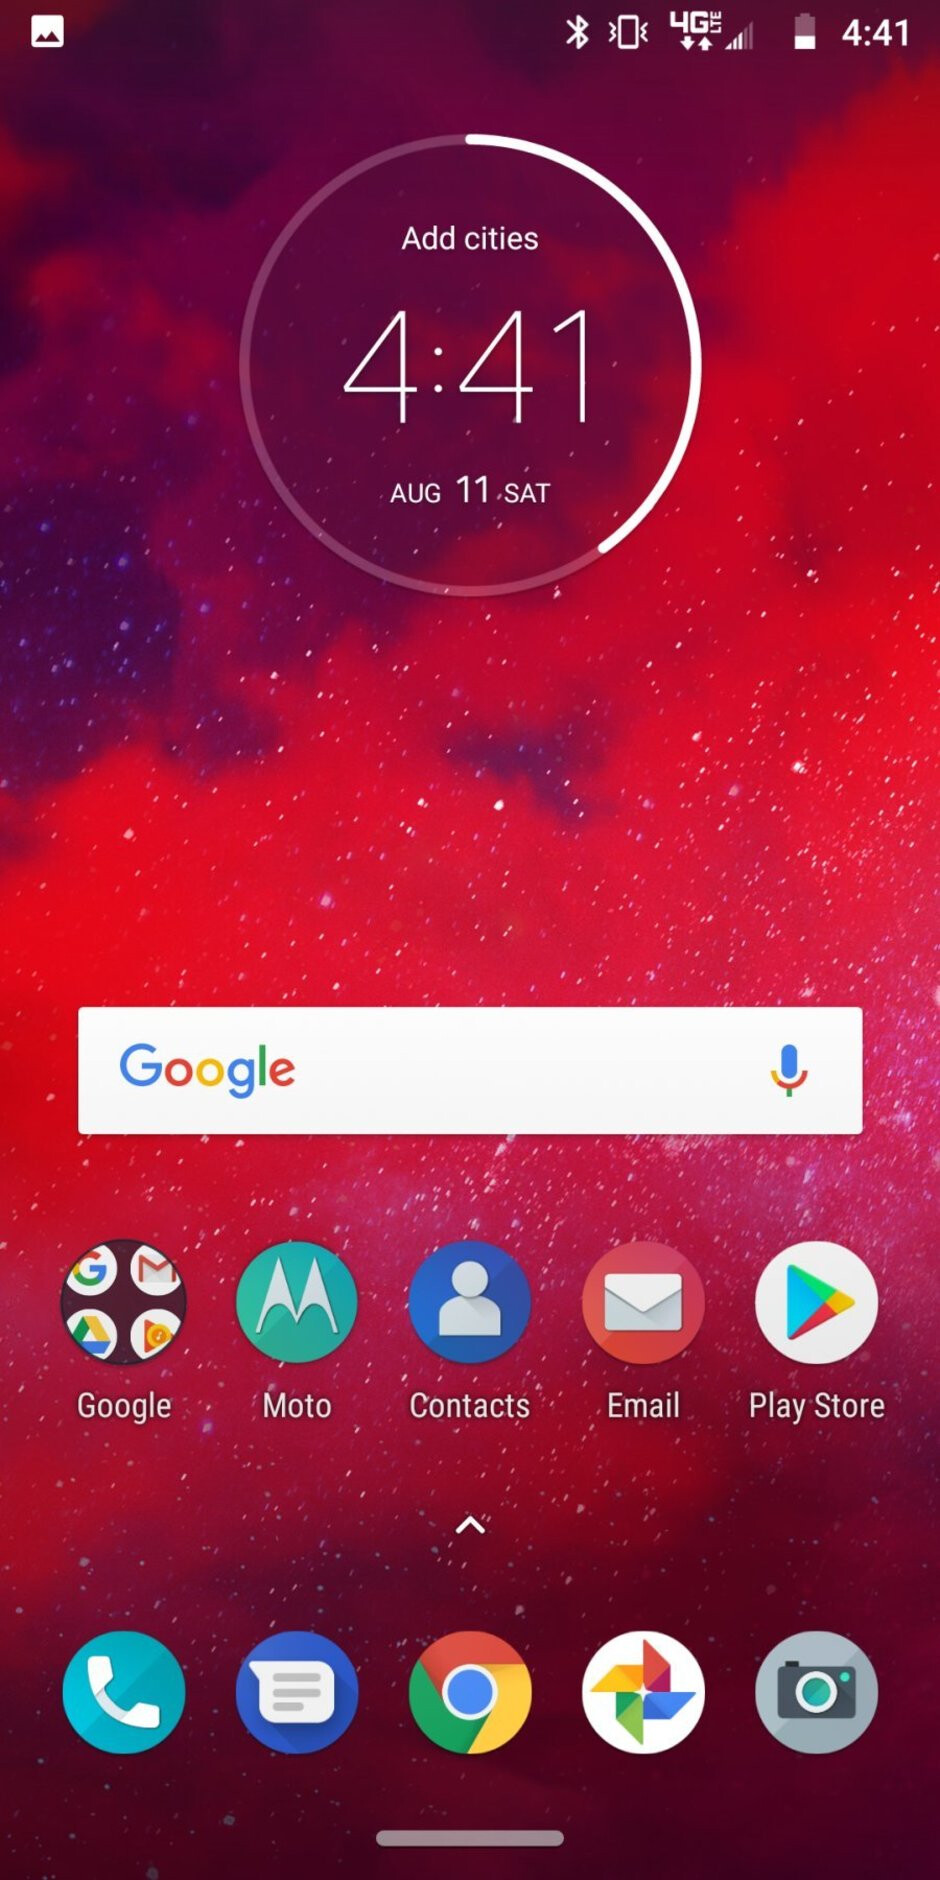 We have Android 8.1 Oreo on the Moto Z3, with some proprietary Moto features in